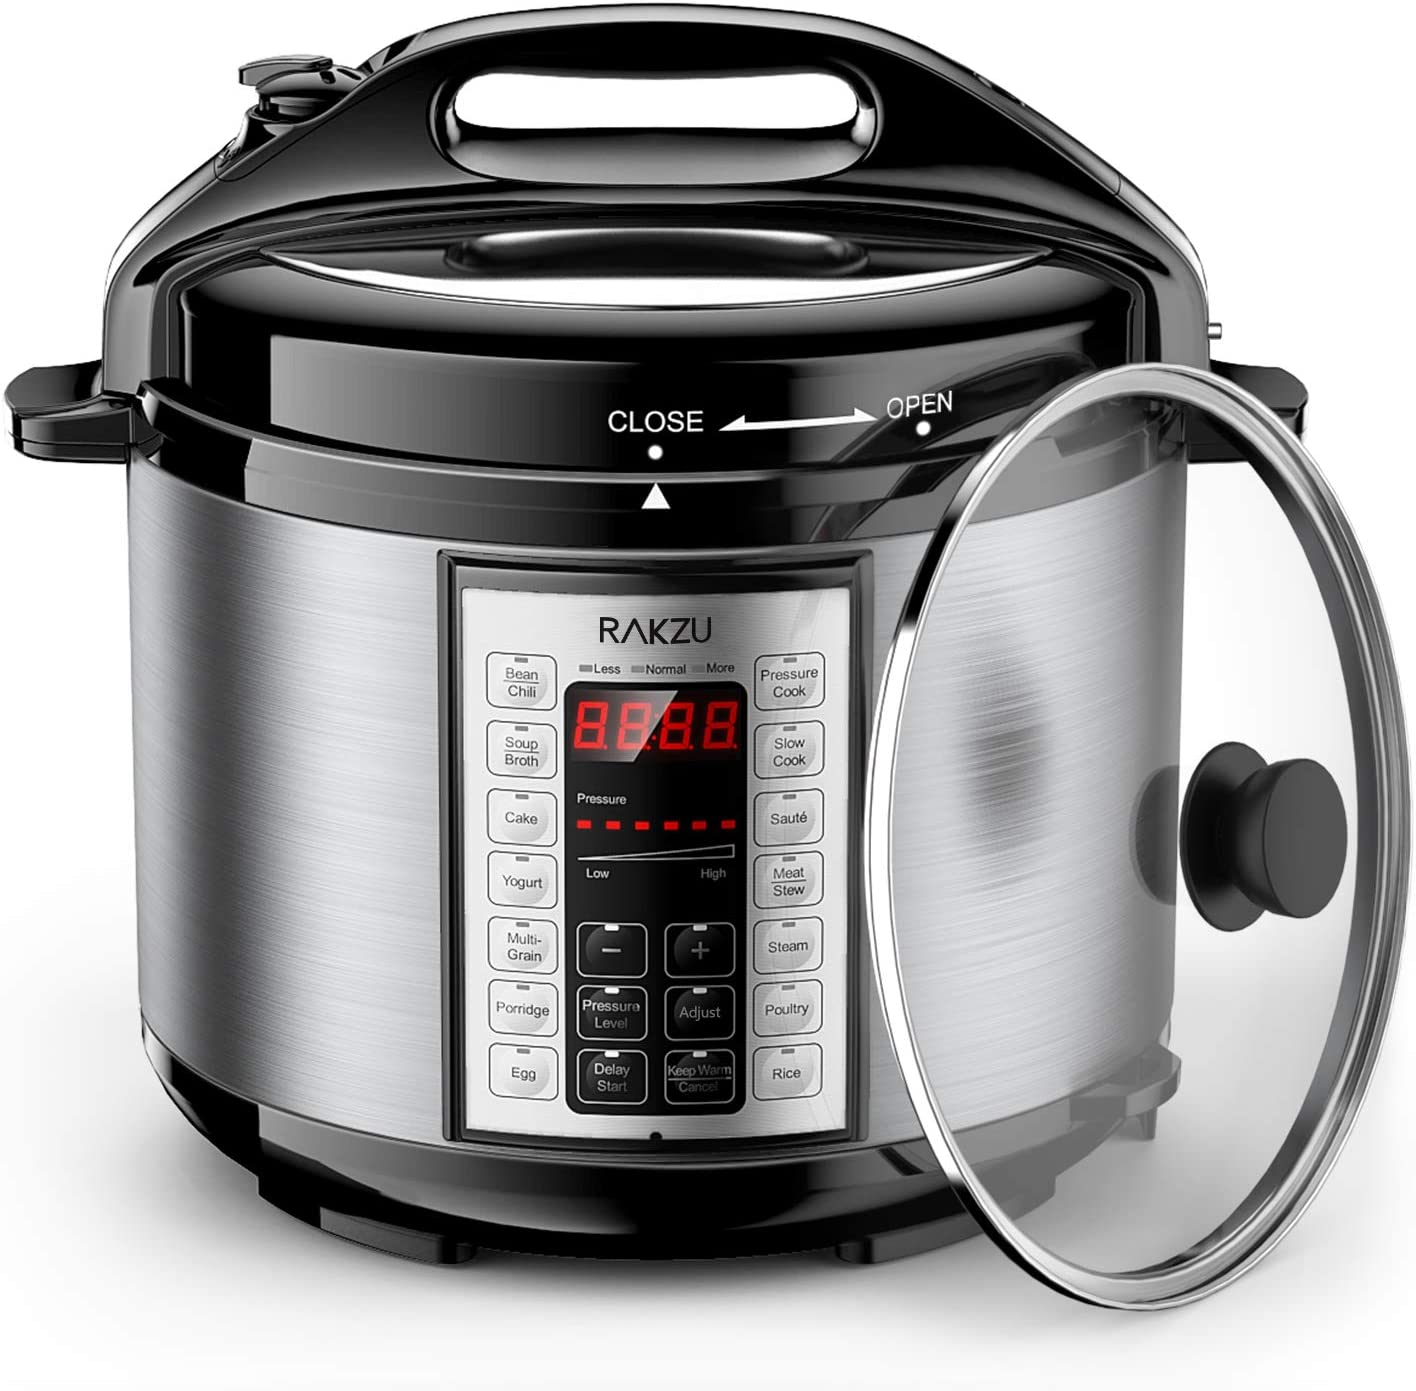 RAKZU 6 Qt 9-in-1 Multi-use Programmable Electric Pressure Cooker with Stainless Steel Pot, Slow Cooker, Rice Cooker, Yogurt Maker, Sauté Steamer, Warmer and Sterilizer